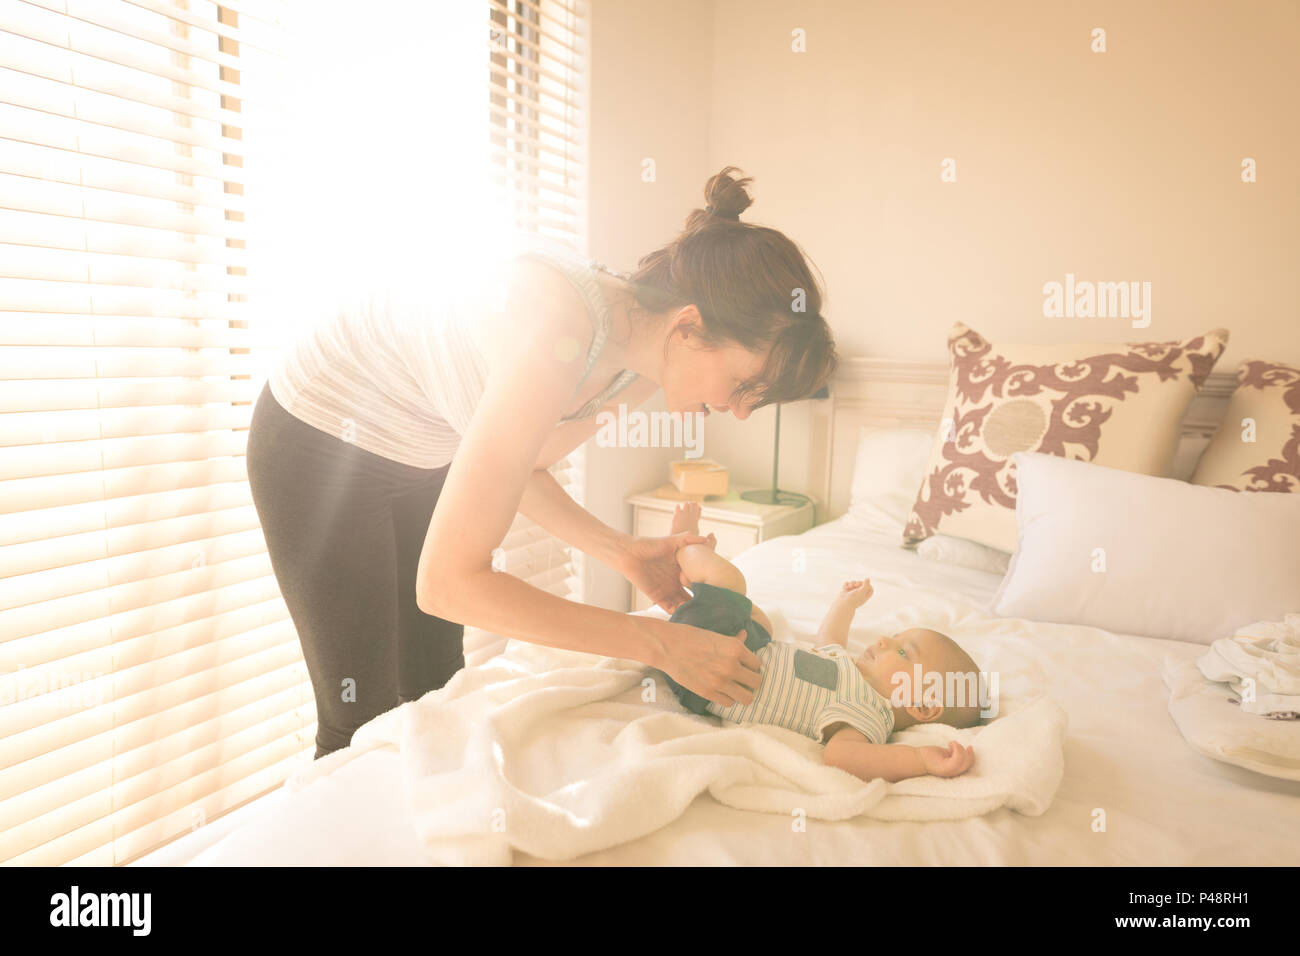 Cute little baby getting dressed by her mother on bed in the bedroom Stock Photo